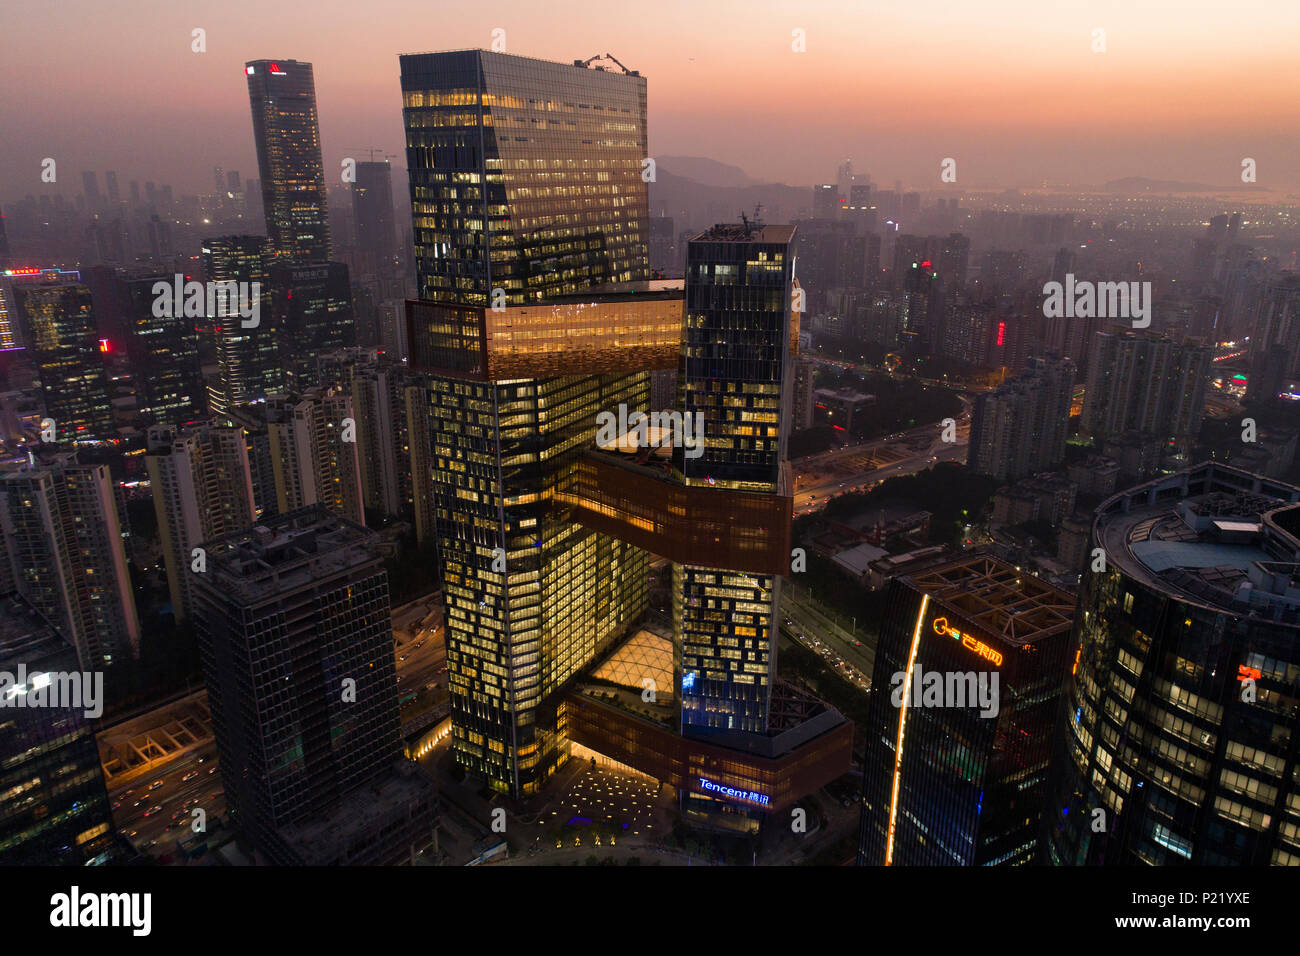 Aerial view of Tencent headquarters in Shenzhen, China. The 250 meter high twin towers are connected by sky bridges and in total can house 12,000 empl - Stock Image